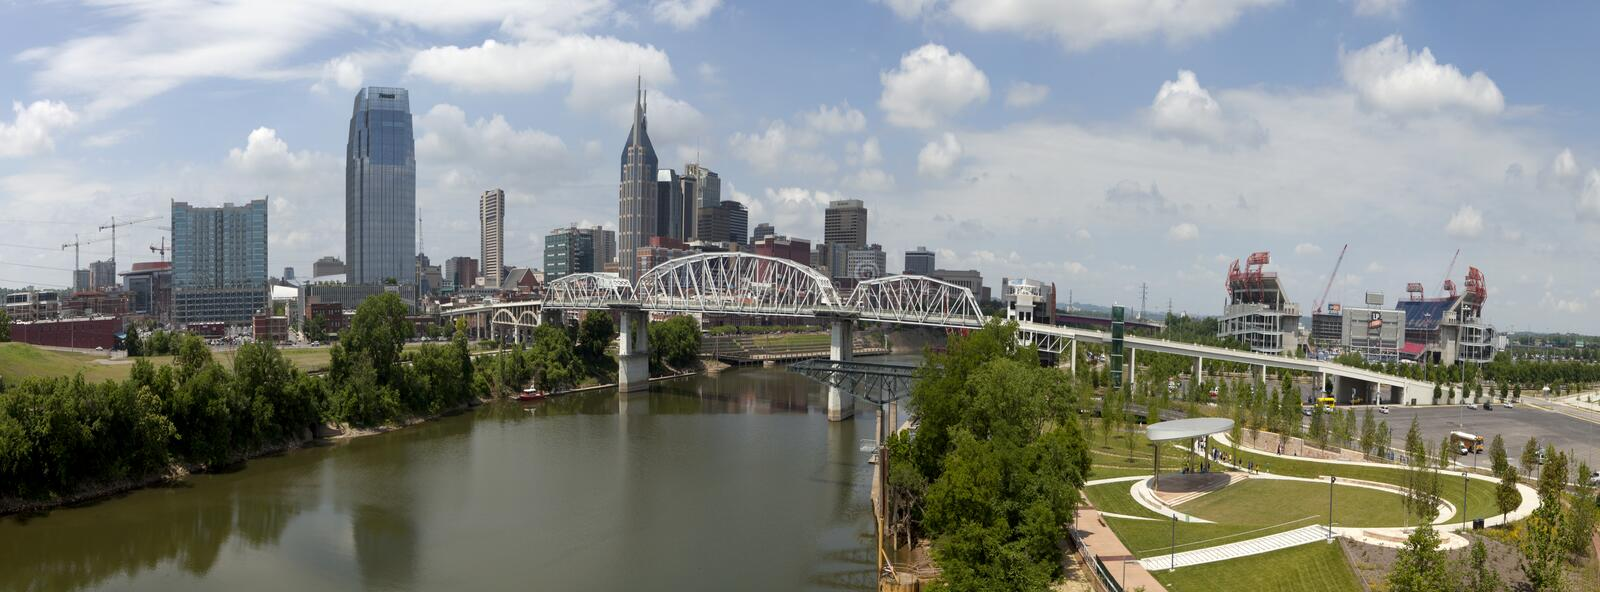 Nashville Tennessee (panoramic) stock image